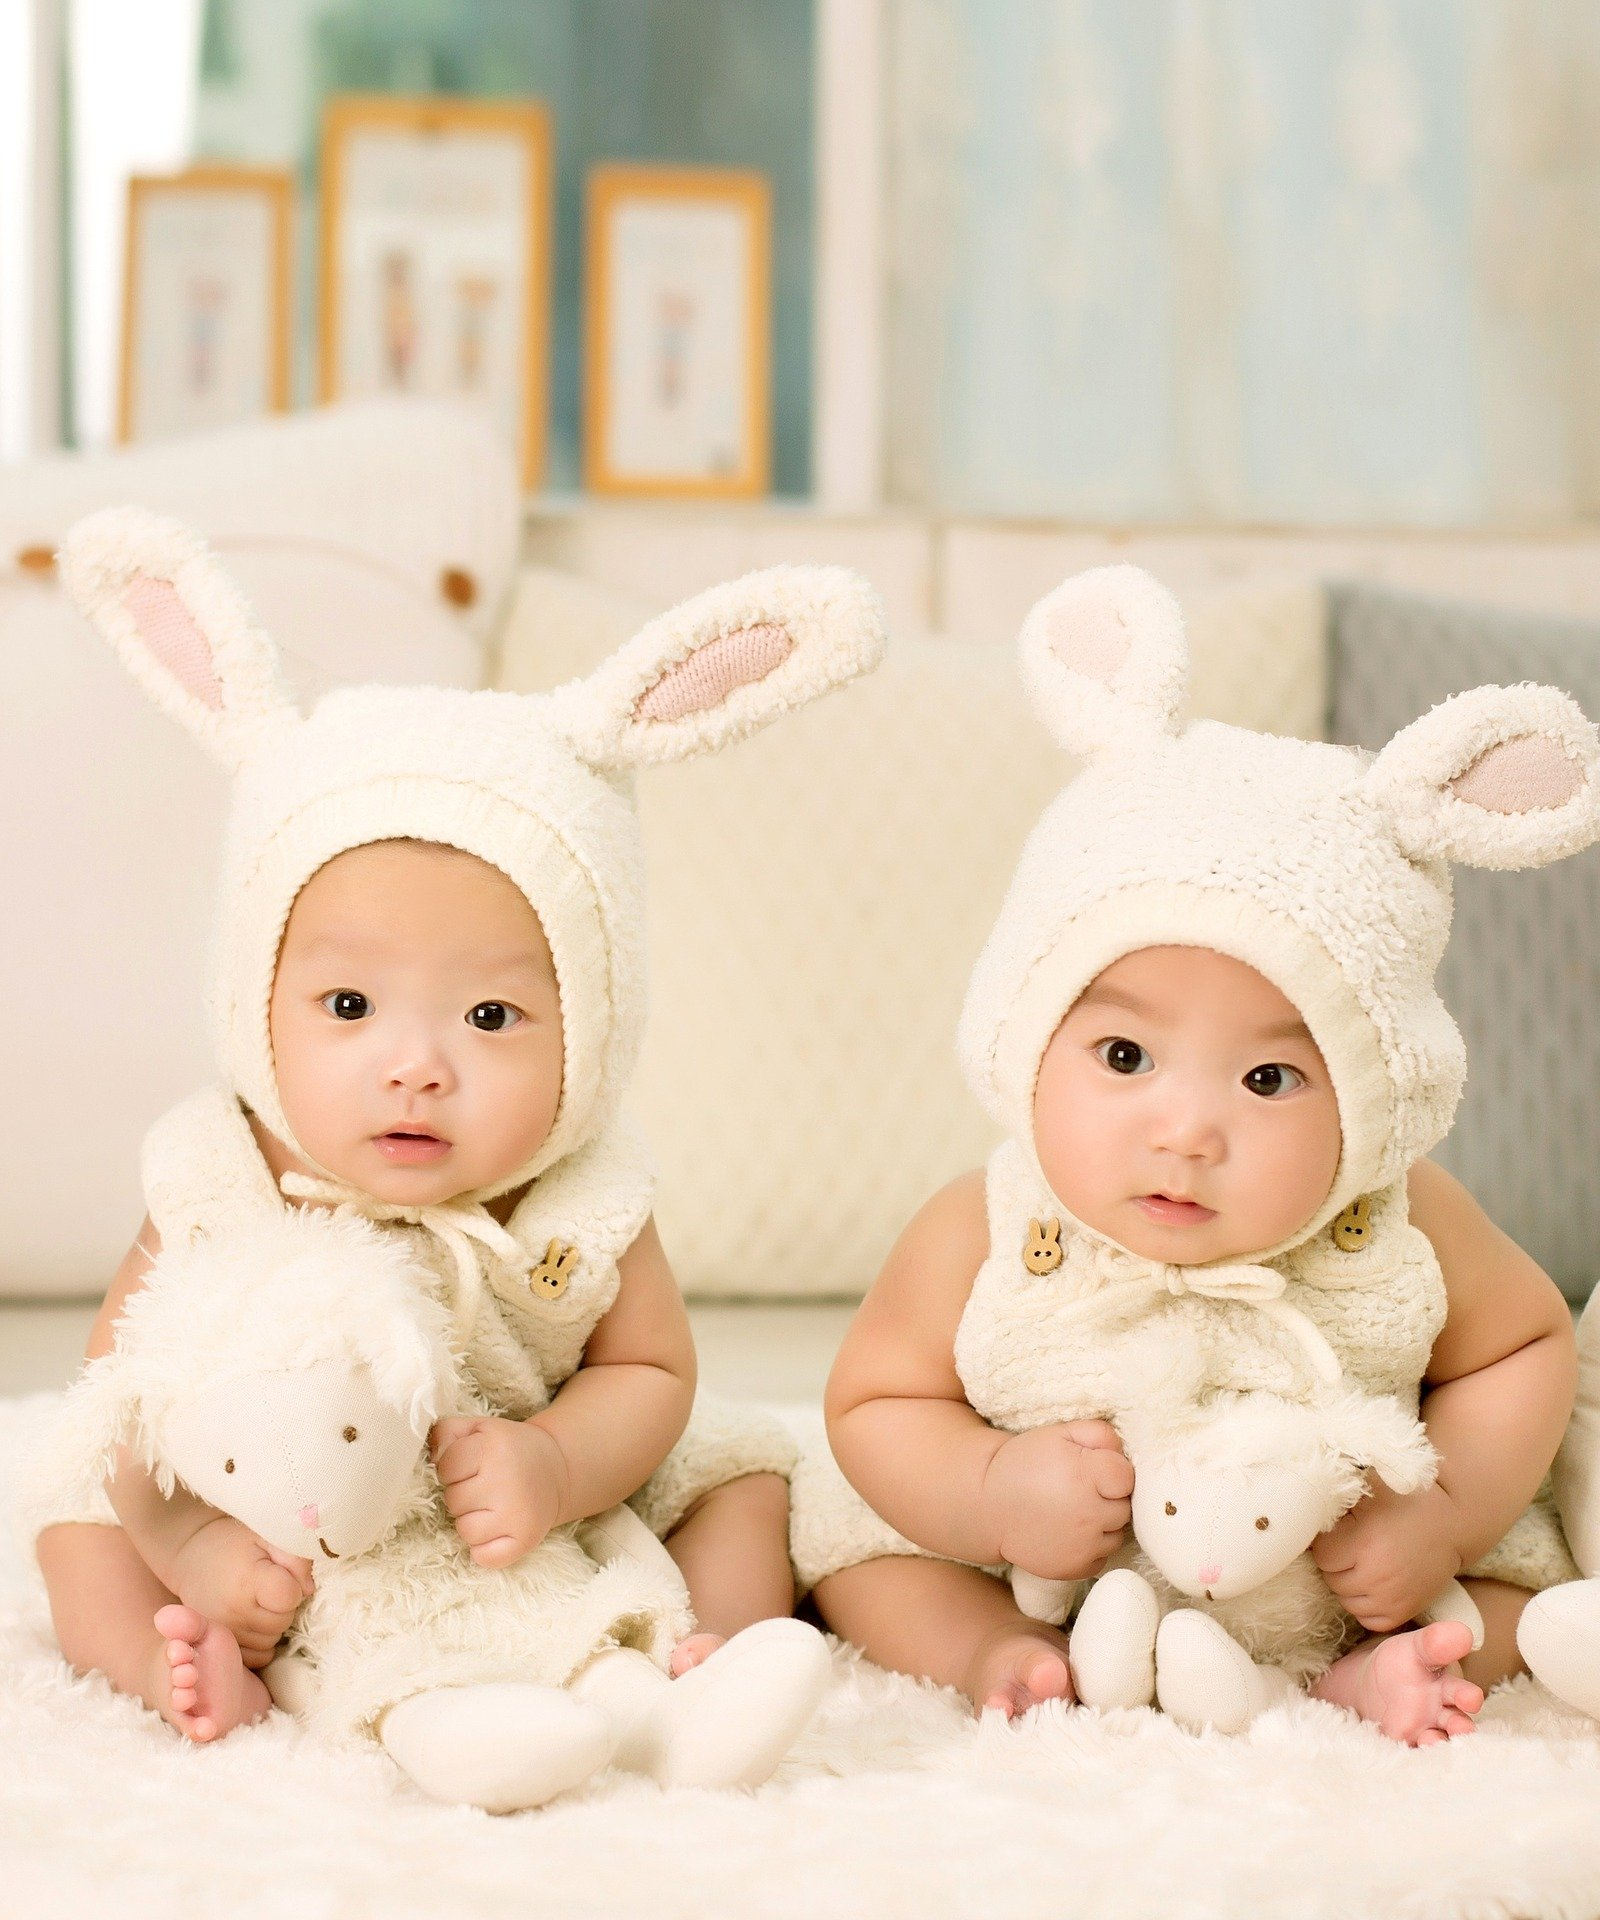 Pictured - A photo of twins wearing bunny outfits and holding on to their toys   Source: Pixabay